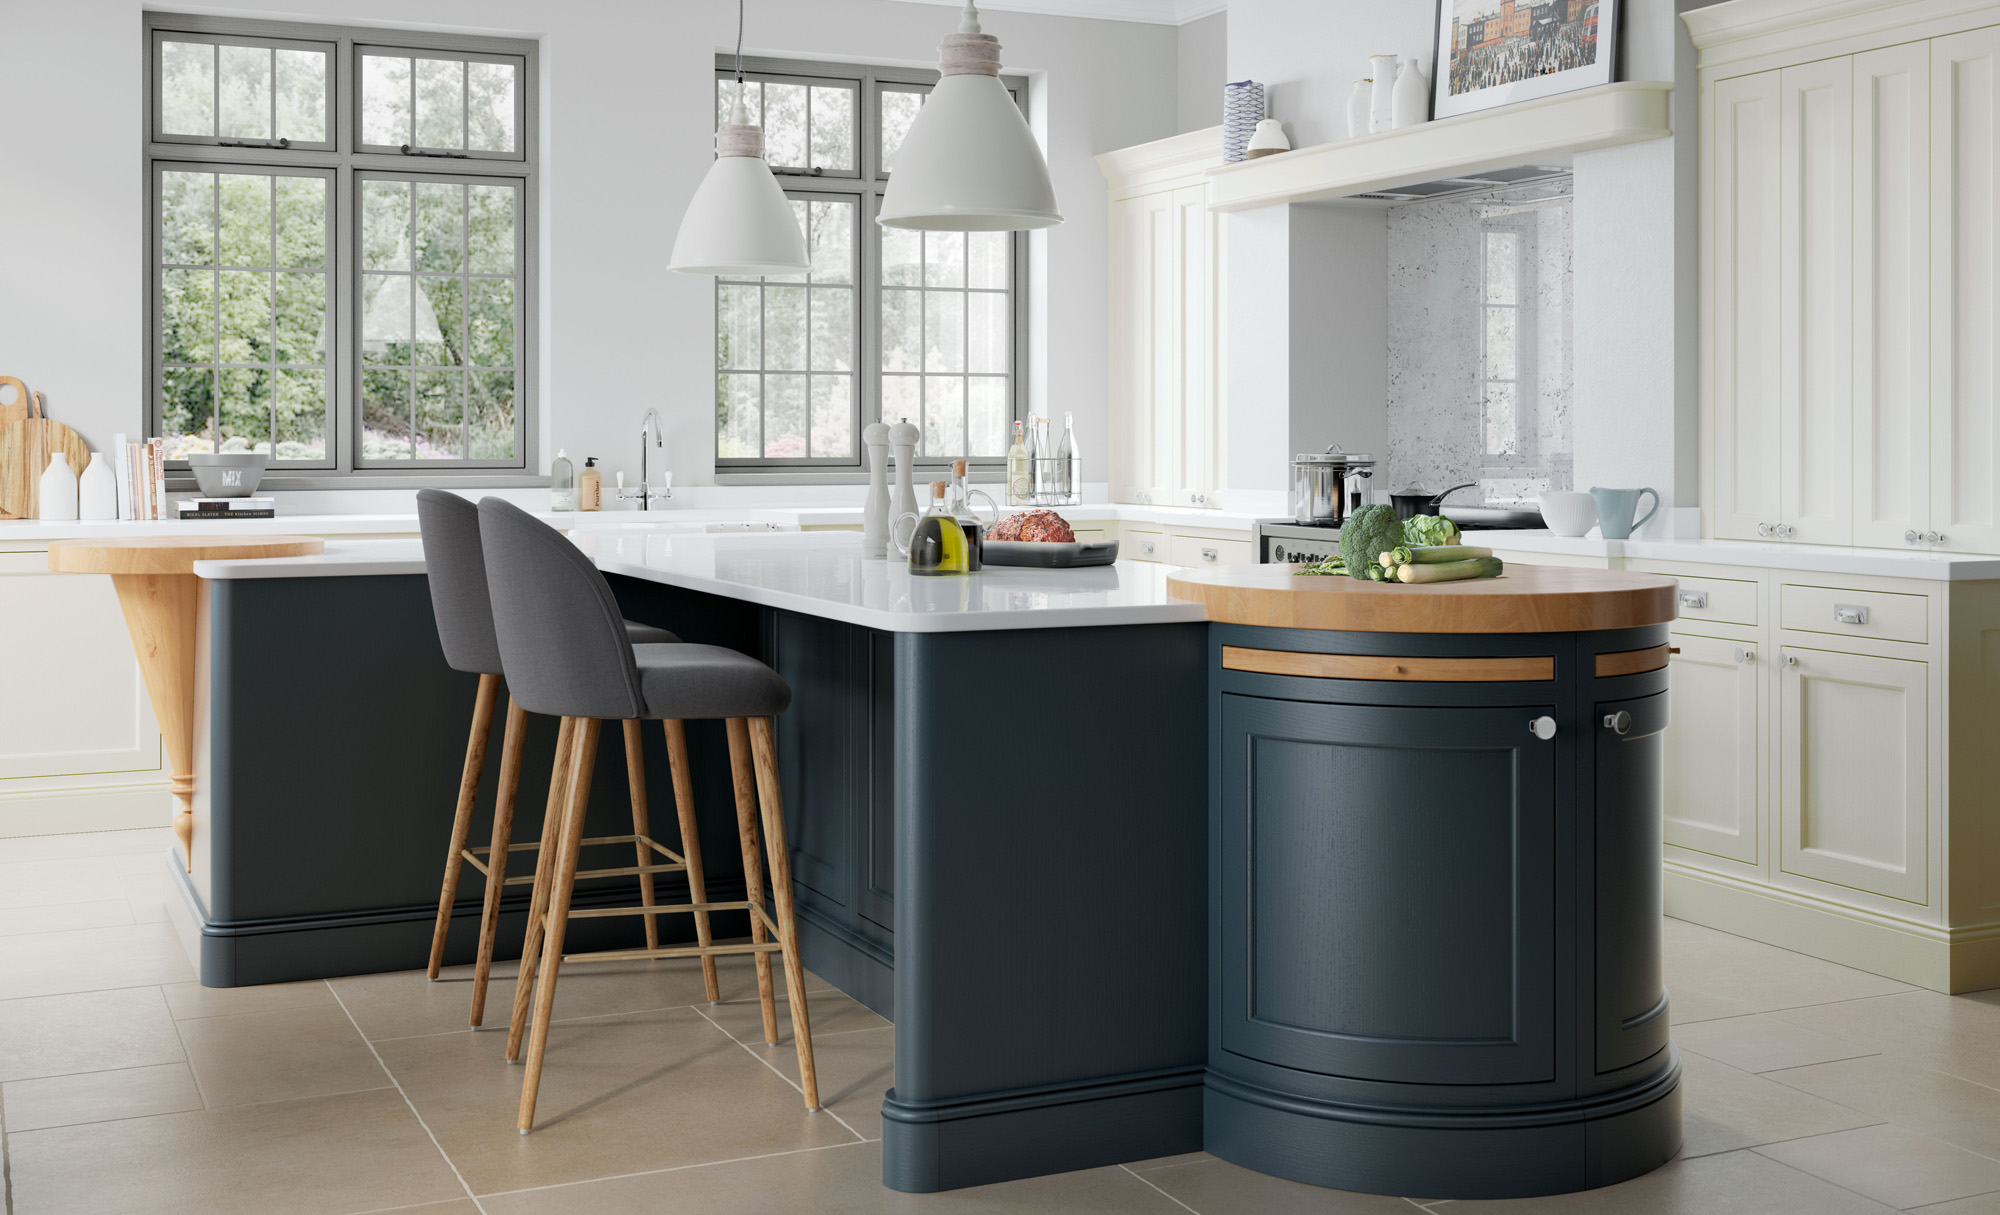 Traditional Classic Belgravia Kitchen in Midnight Blue & Porcelain